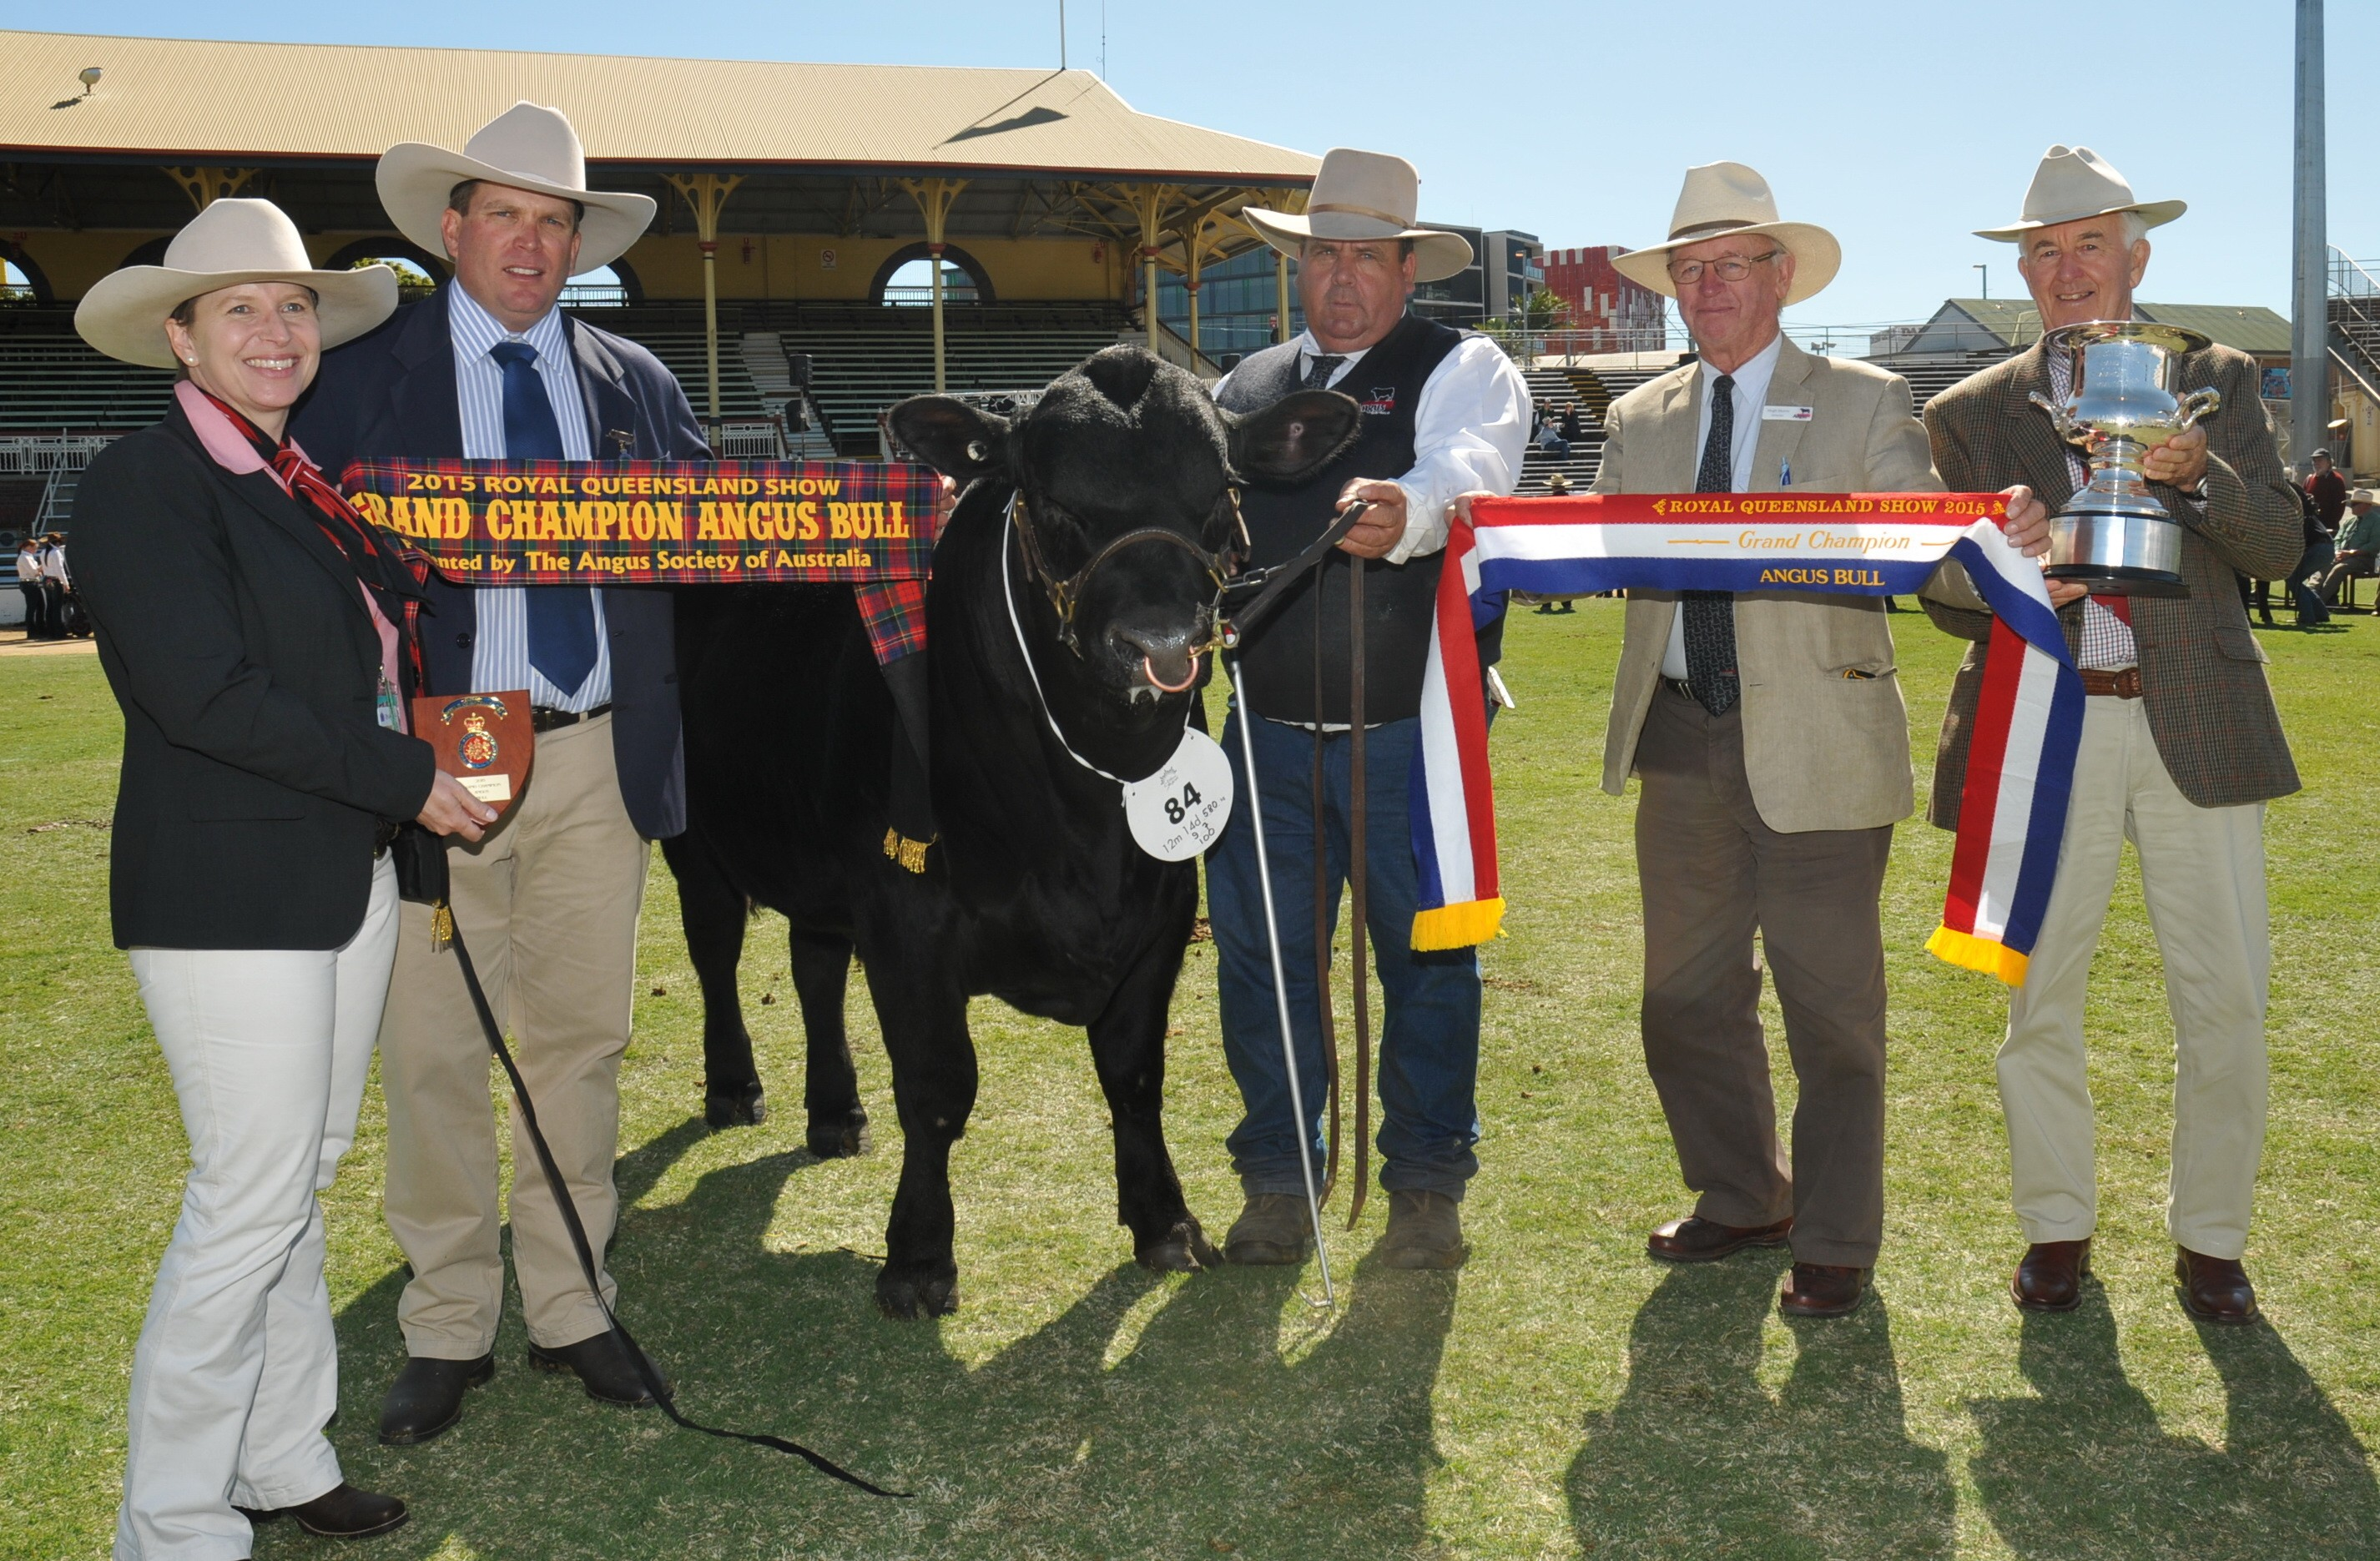 EKKA 2015 Grand Champion Angus Bull